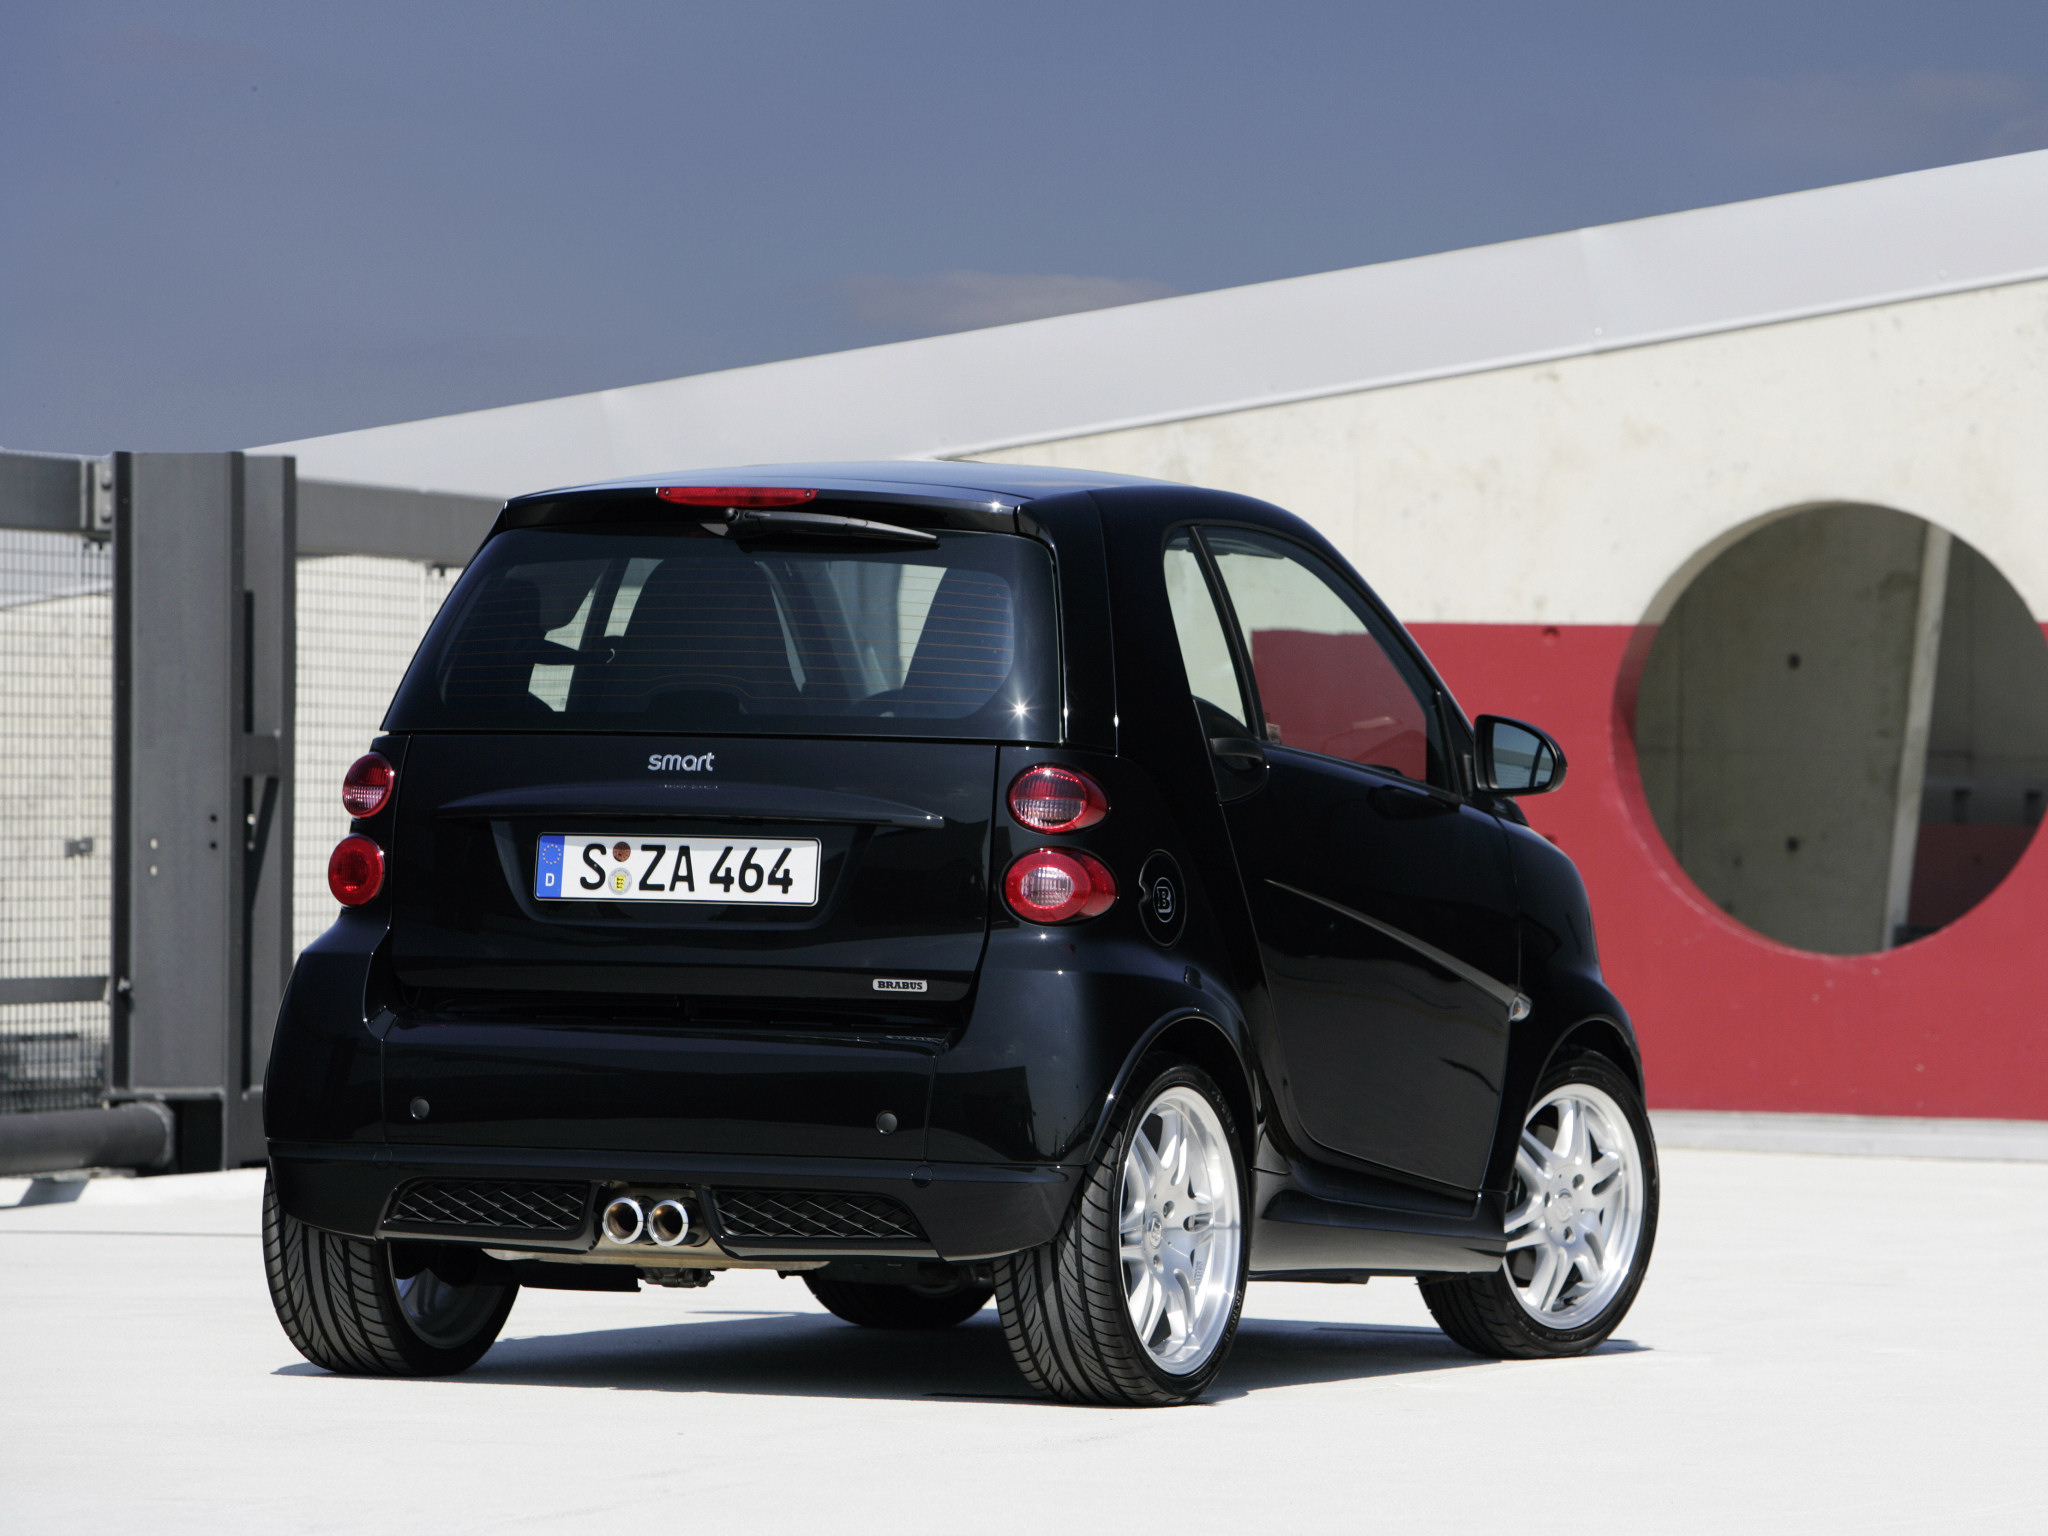 2007 smart brabus photos informations articles bestcarmag 2007 smart brabus 22 altavistaventures Image collections